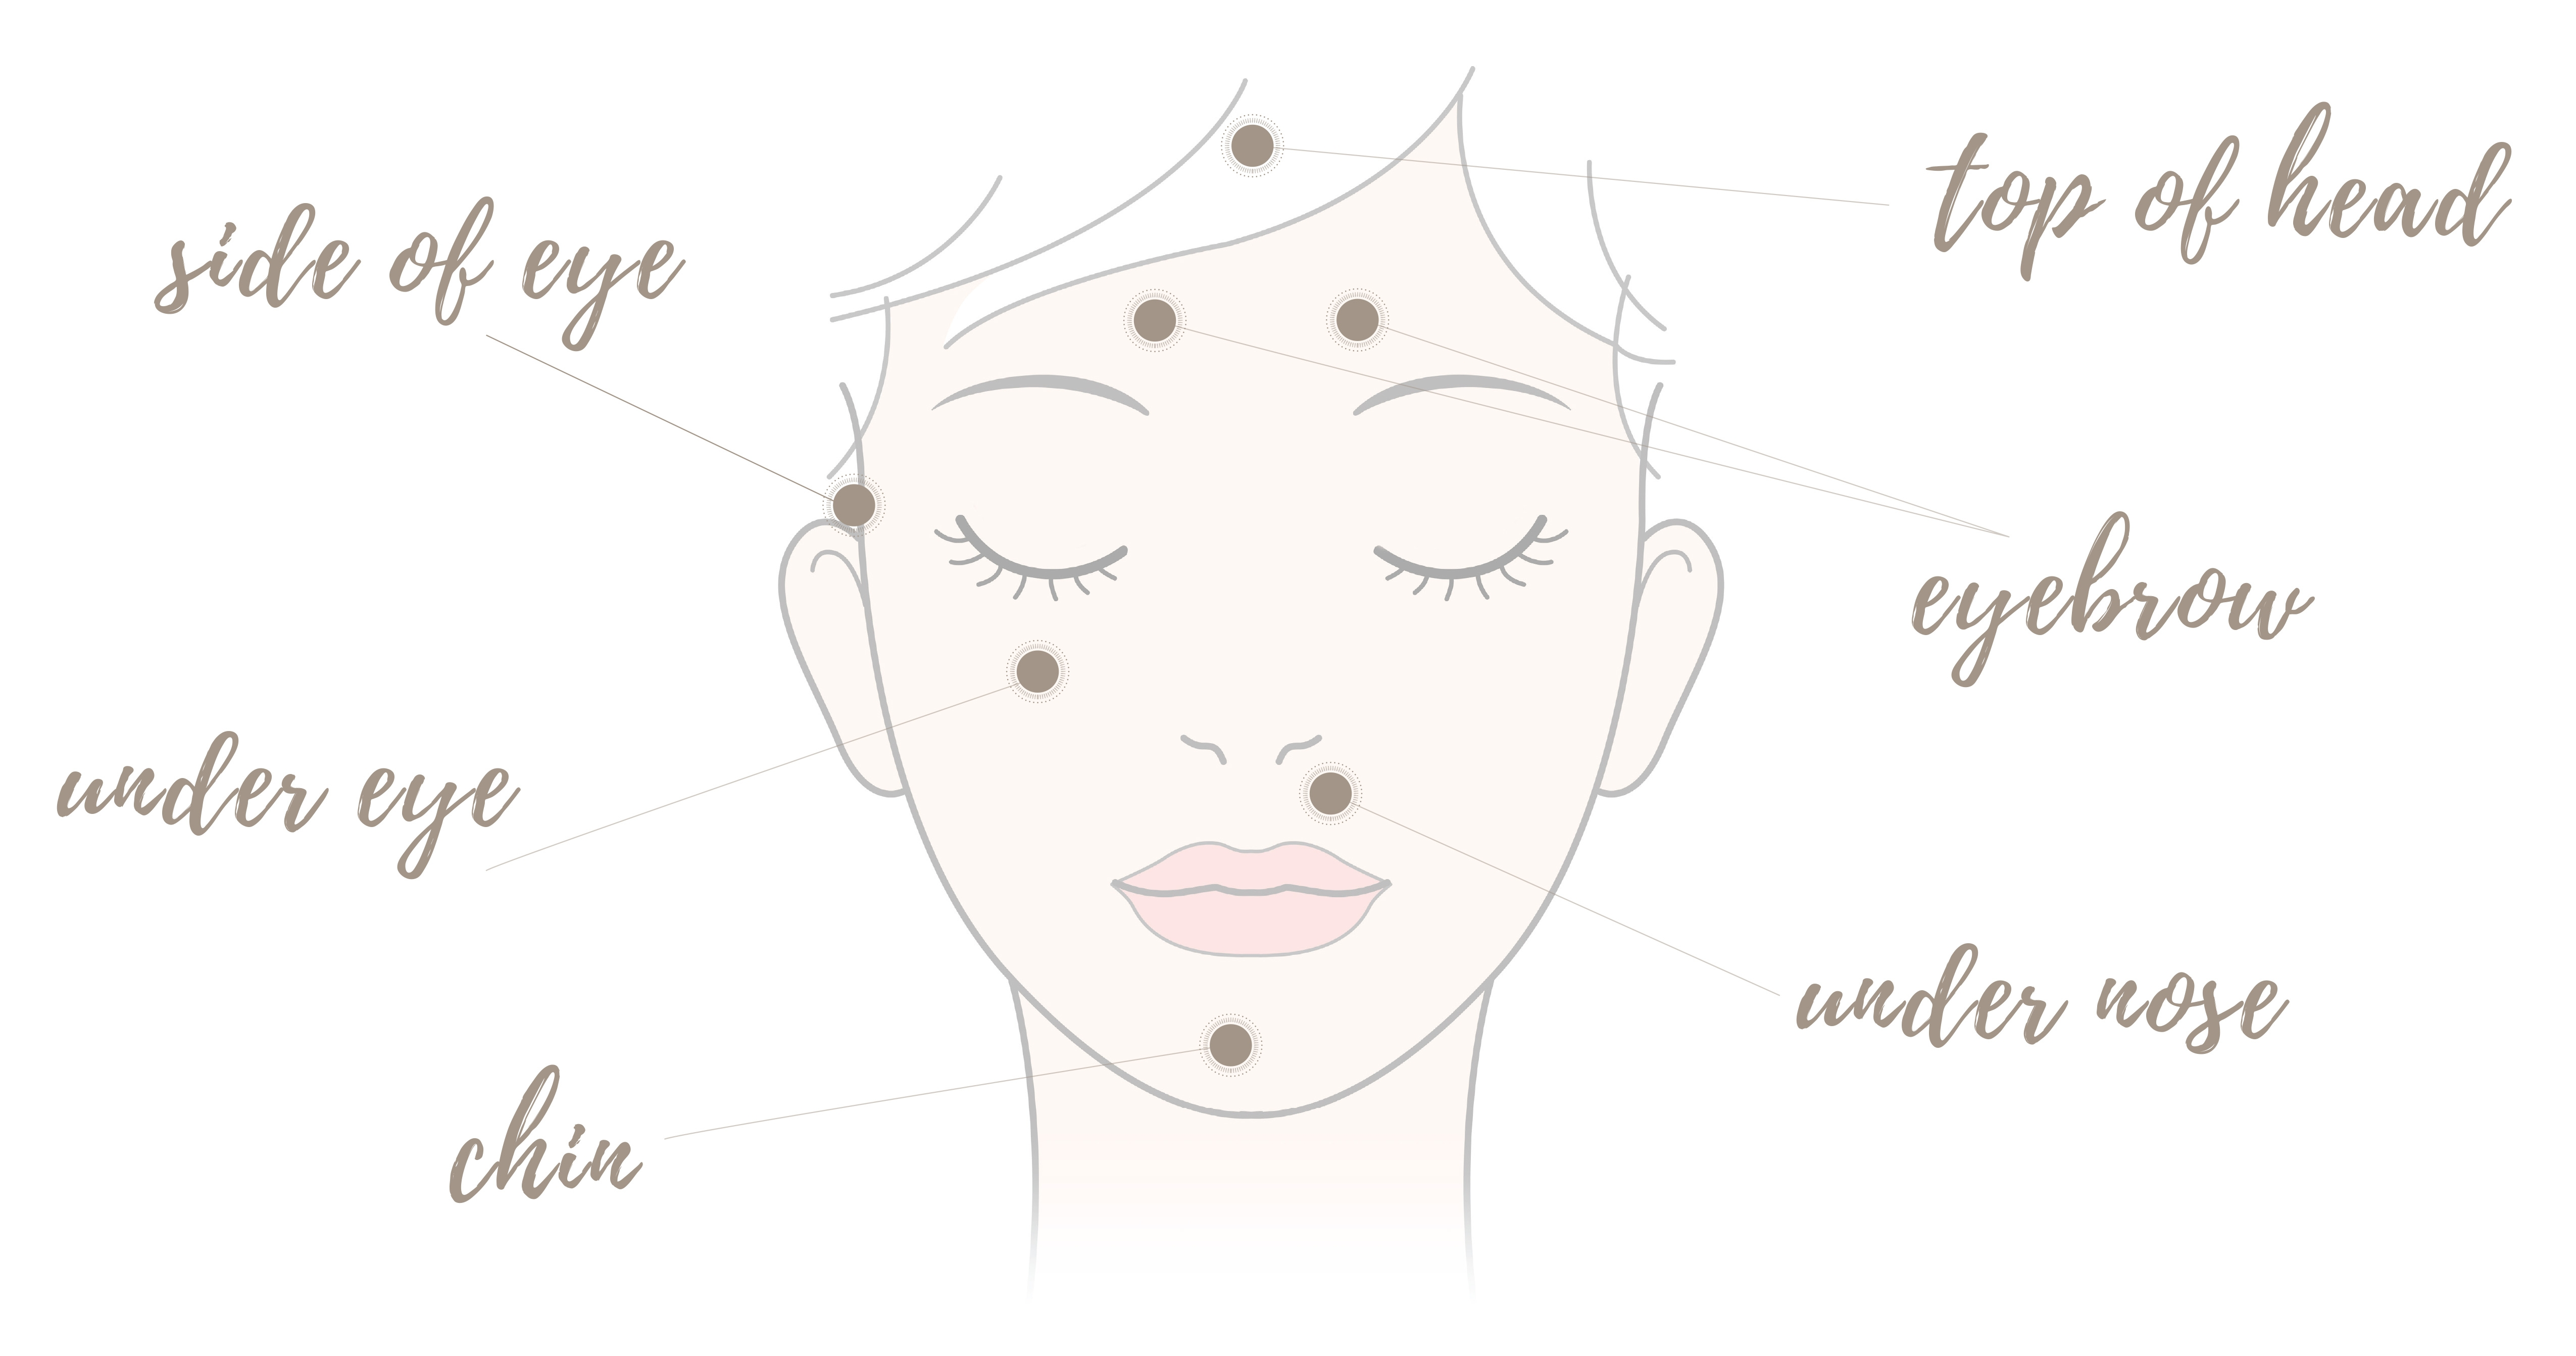 EFT tapping points on face and head